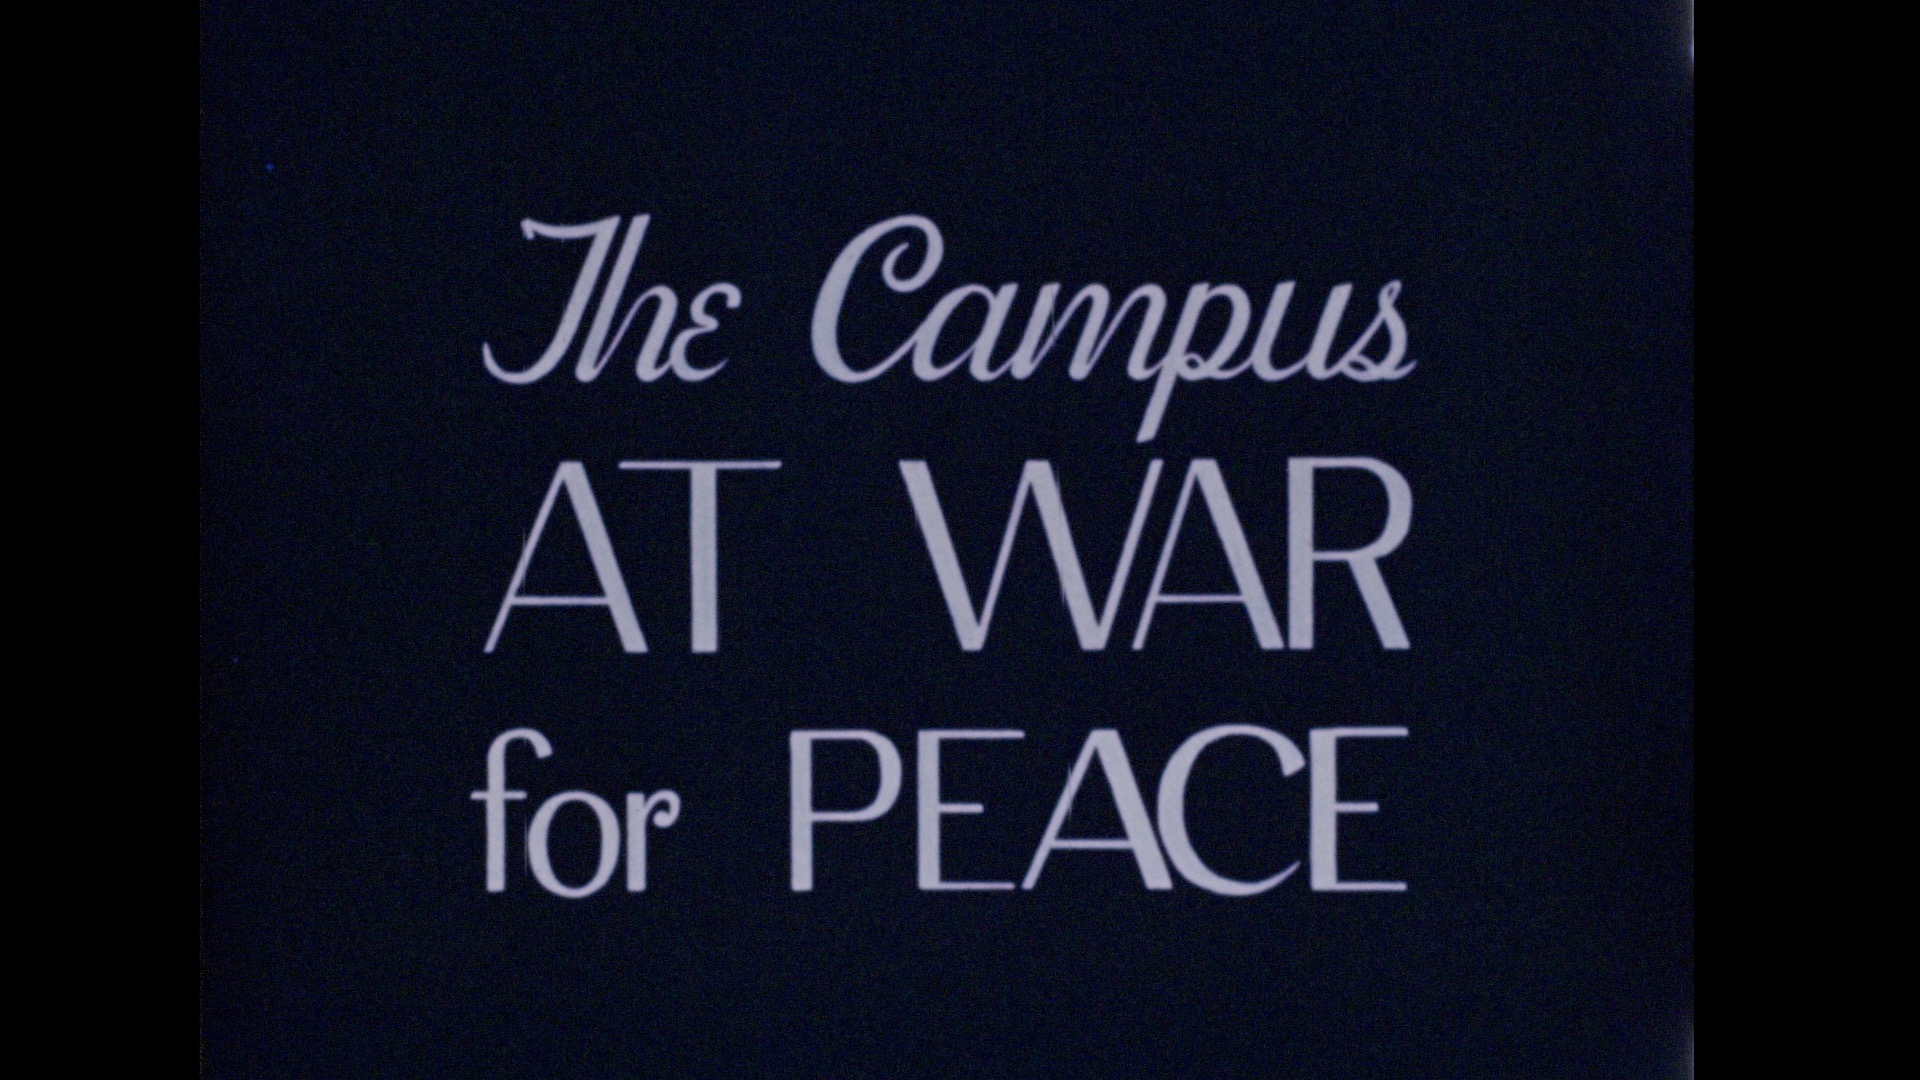 The Campus at War for Peace, 1944